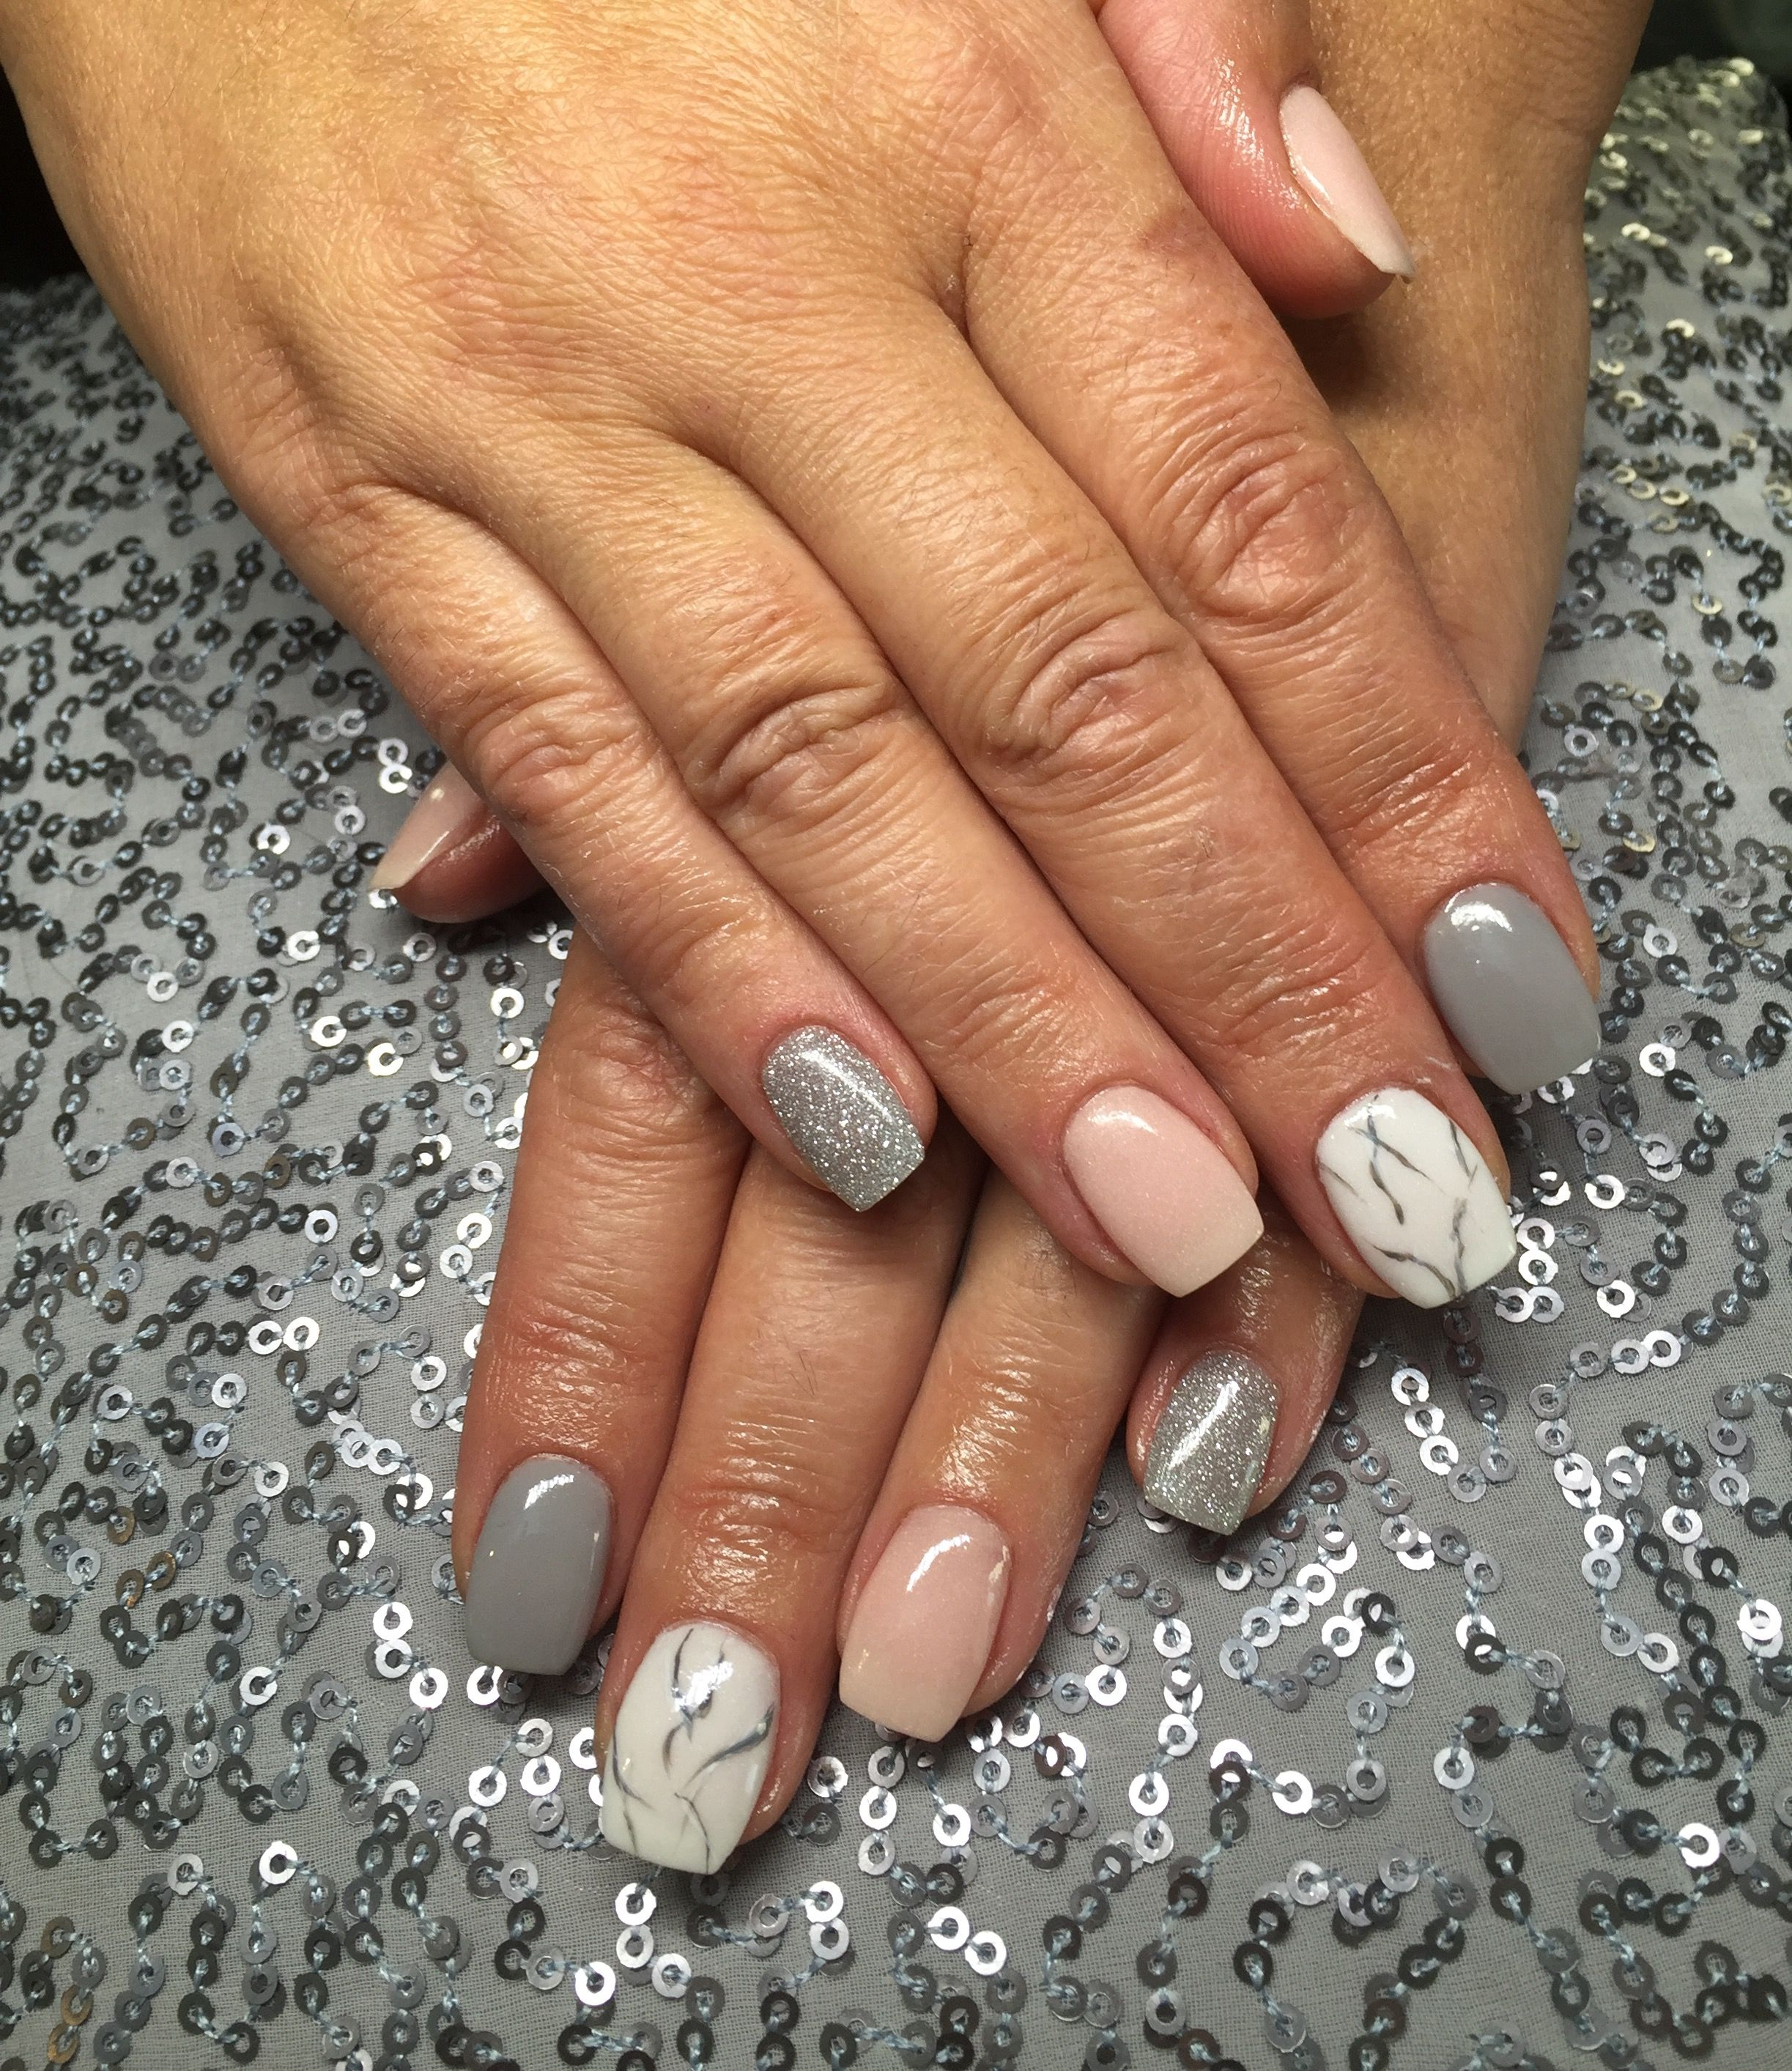 Image result for SNS dip manicure | Nails | Pinterest | Sns nails ...